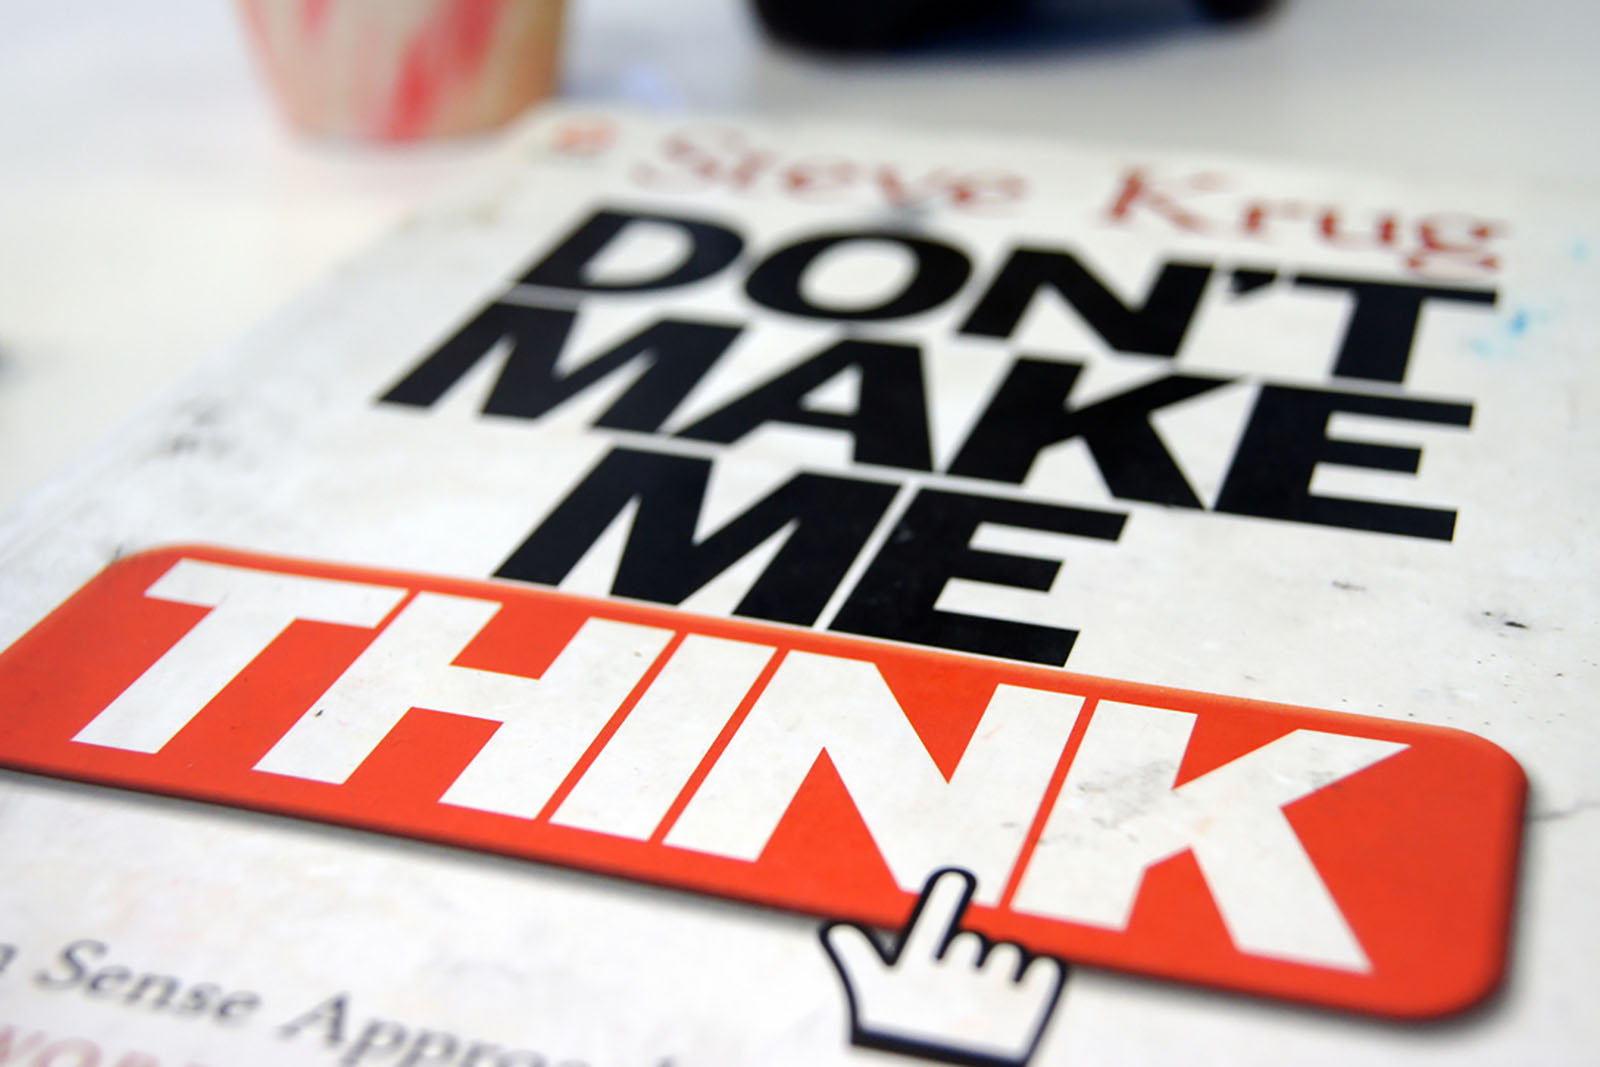 A copy of the book 'Don't Make Me Think' by UX expert Steve Krug.